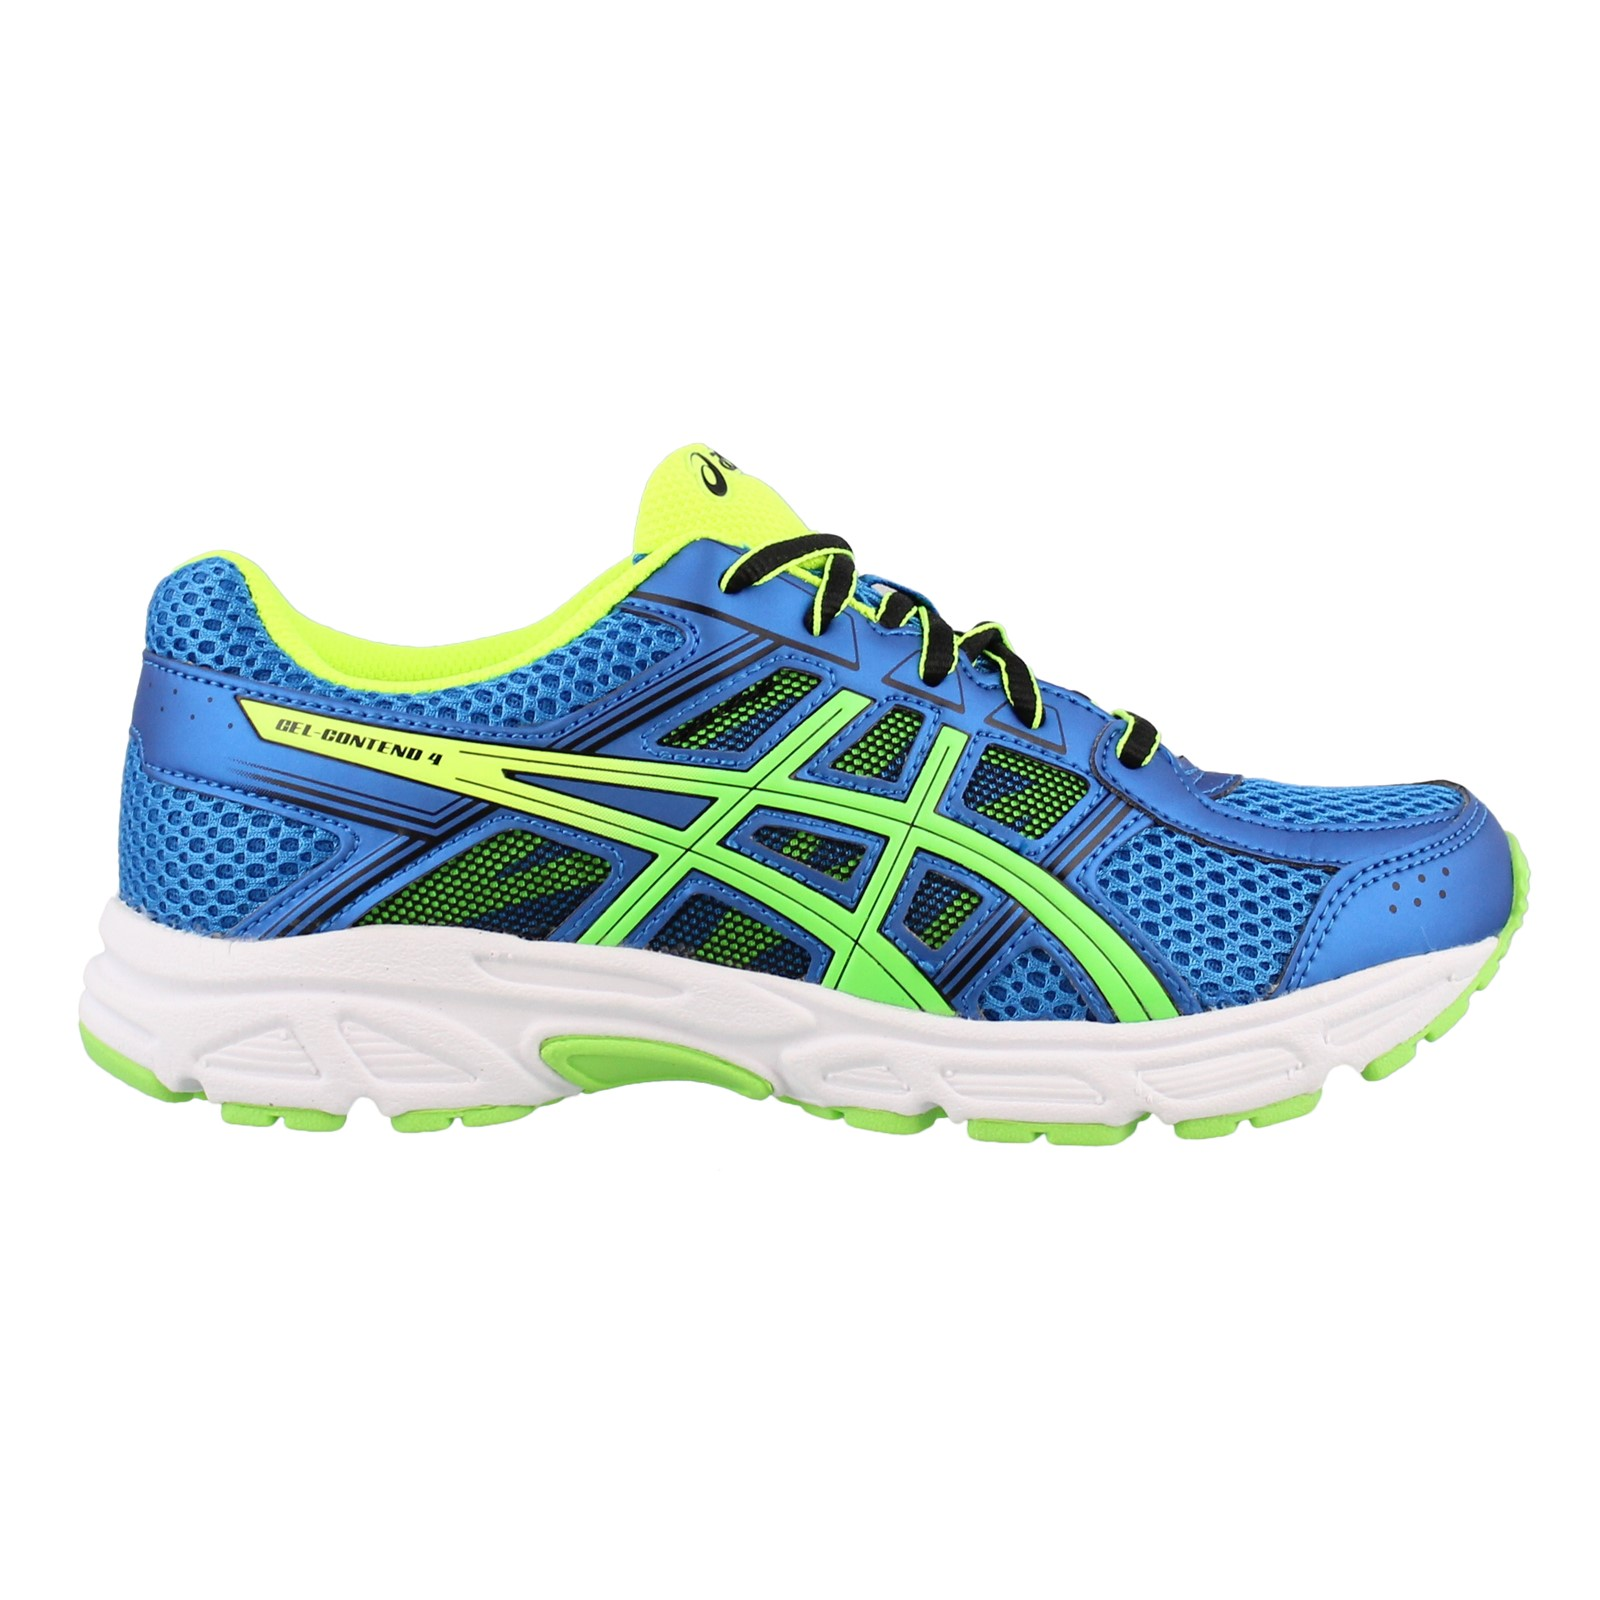 premium selection 8d606 44099 Boy's Asics, Gel Contend 4 GS Running Sneakers